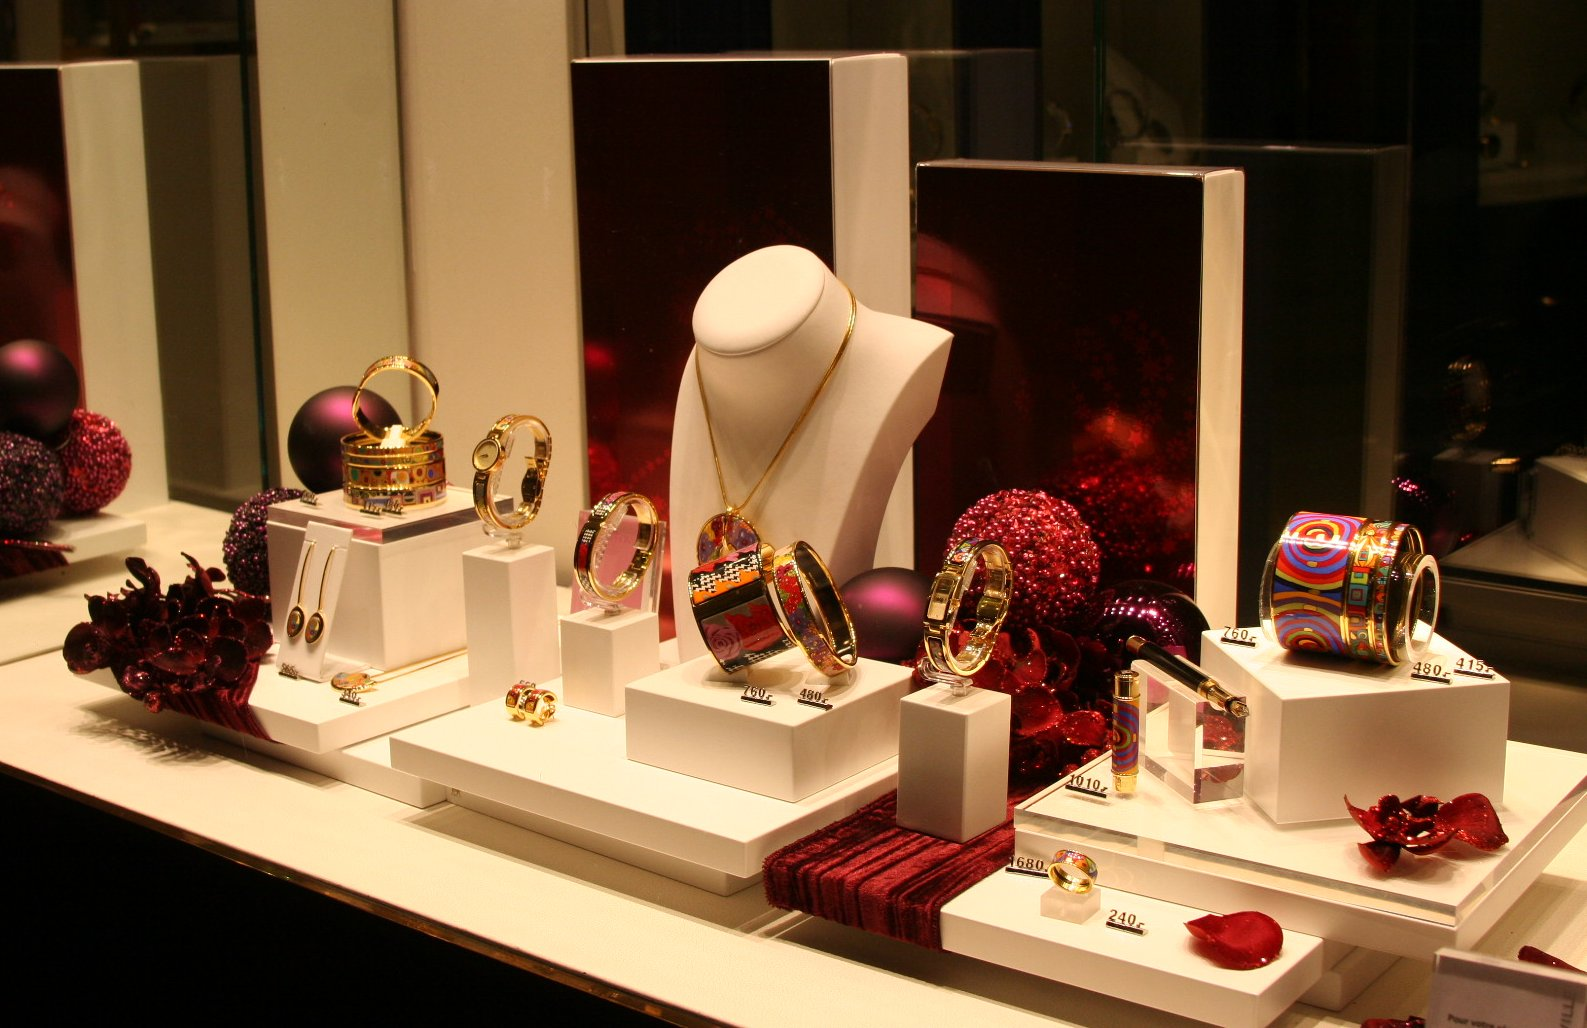 Festive visual merchandising display with red elements and decoration.